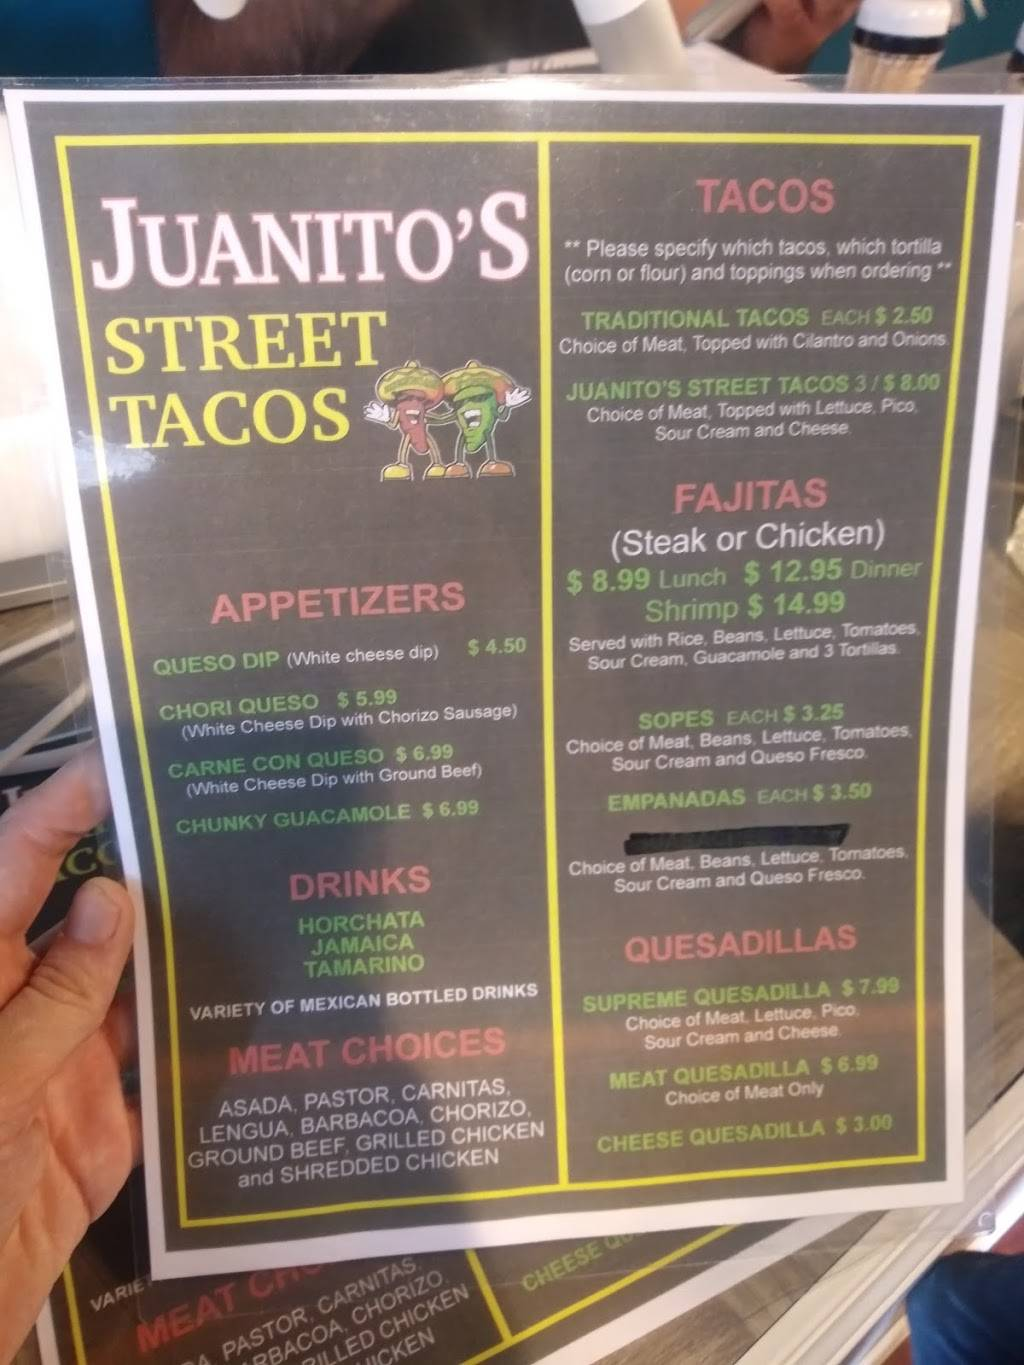 Juanitos Street Tacos | restaurant | 885 N Dixie Blvd, Radcliff, KY 40160, USA | 2708010010 OR +1 270-801-0010